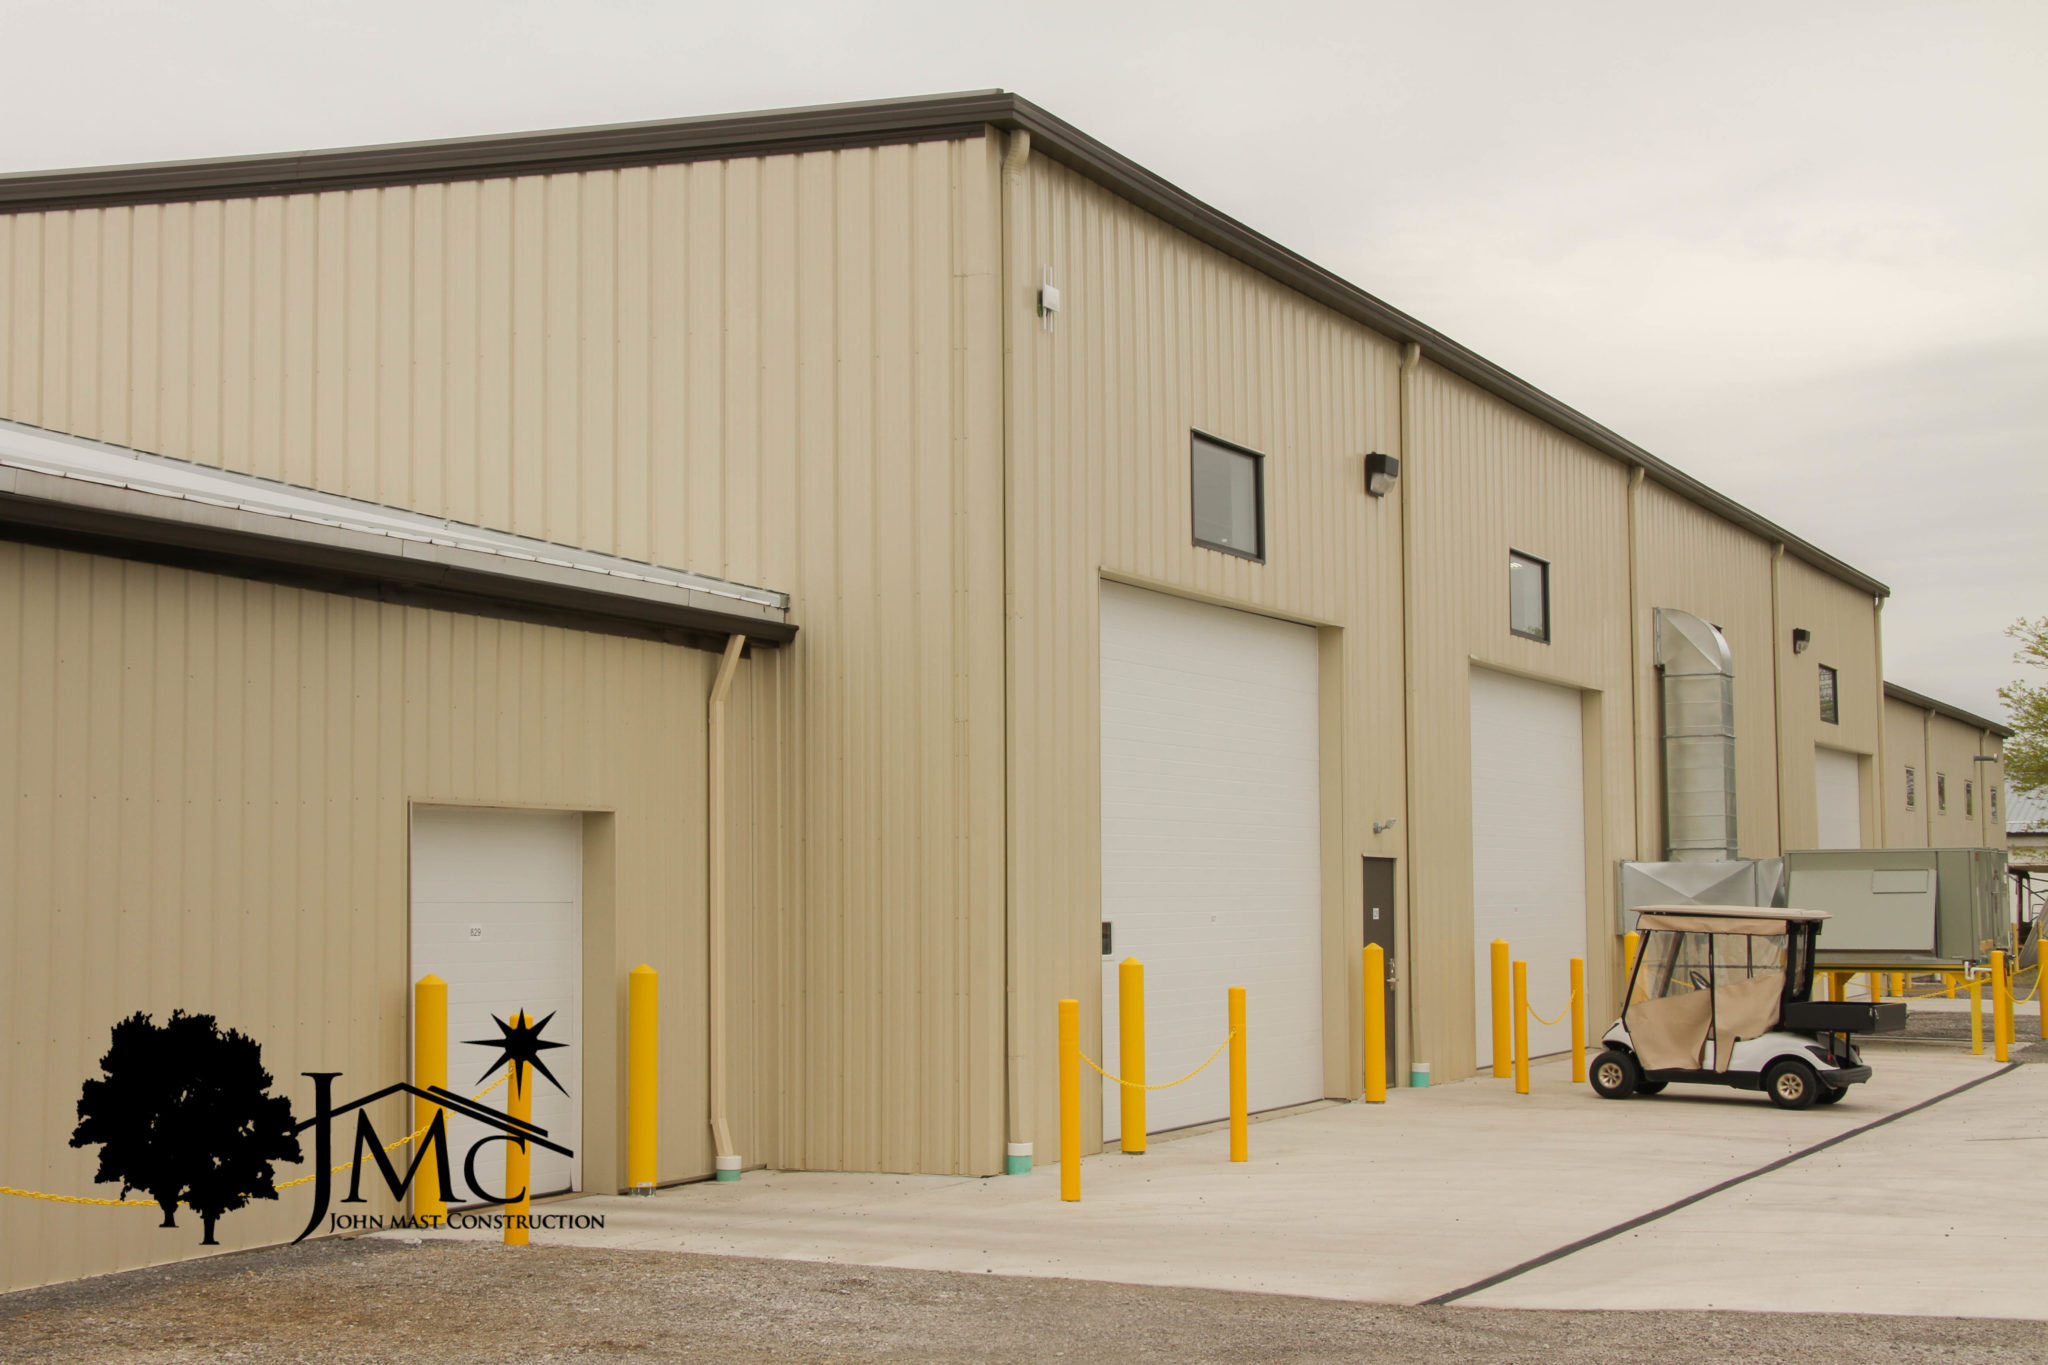 Commercial Garage Doors With Windows Inside Commercial Garage Doors With Windows In Nappanee Indiana John